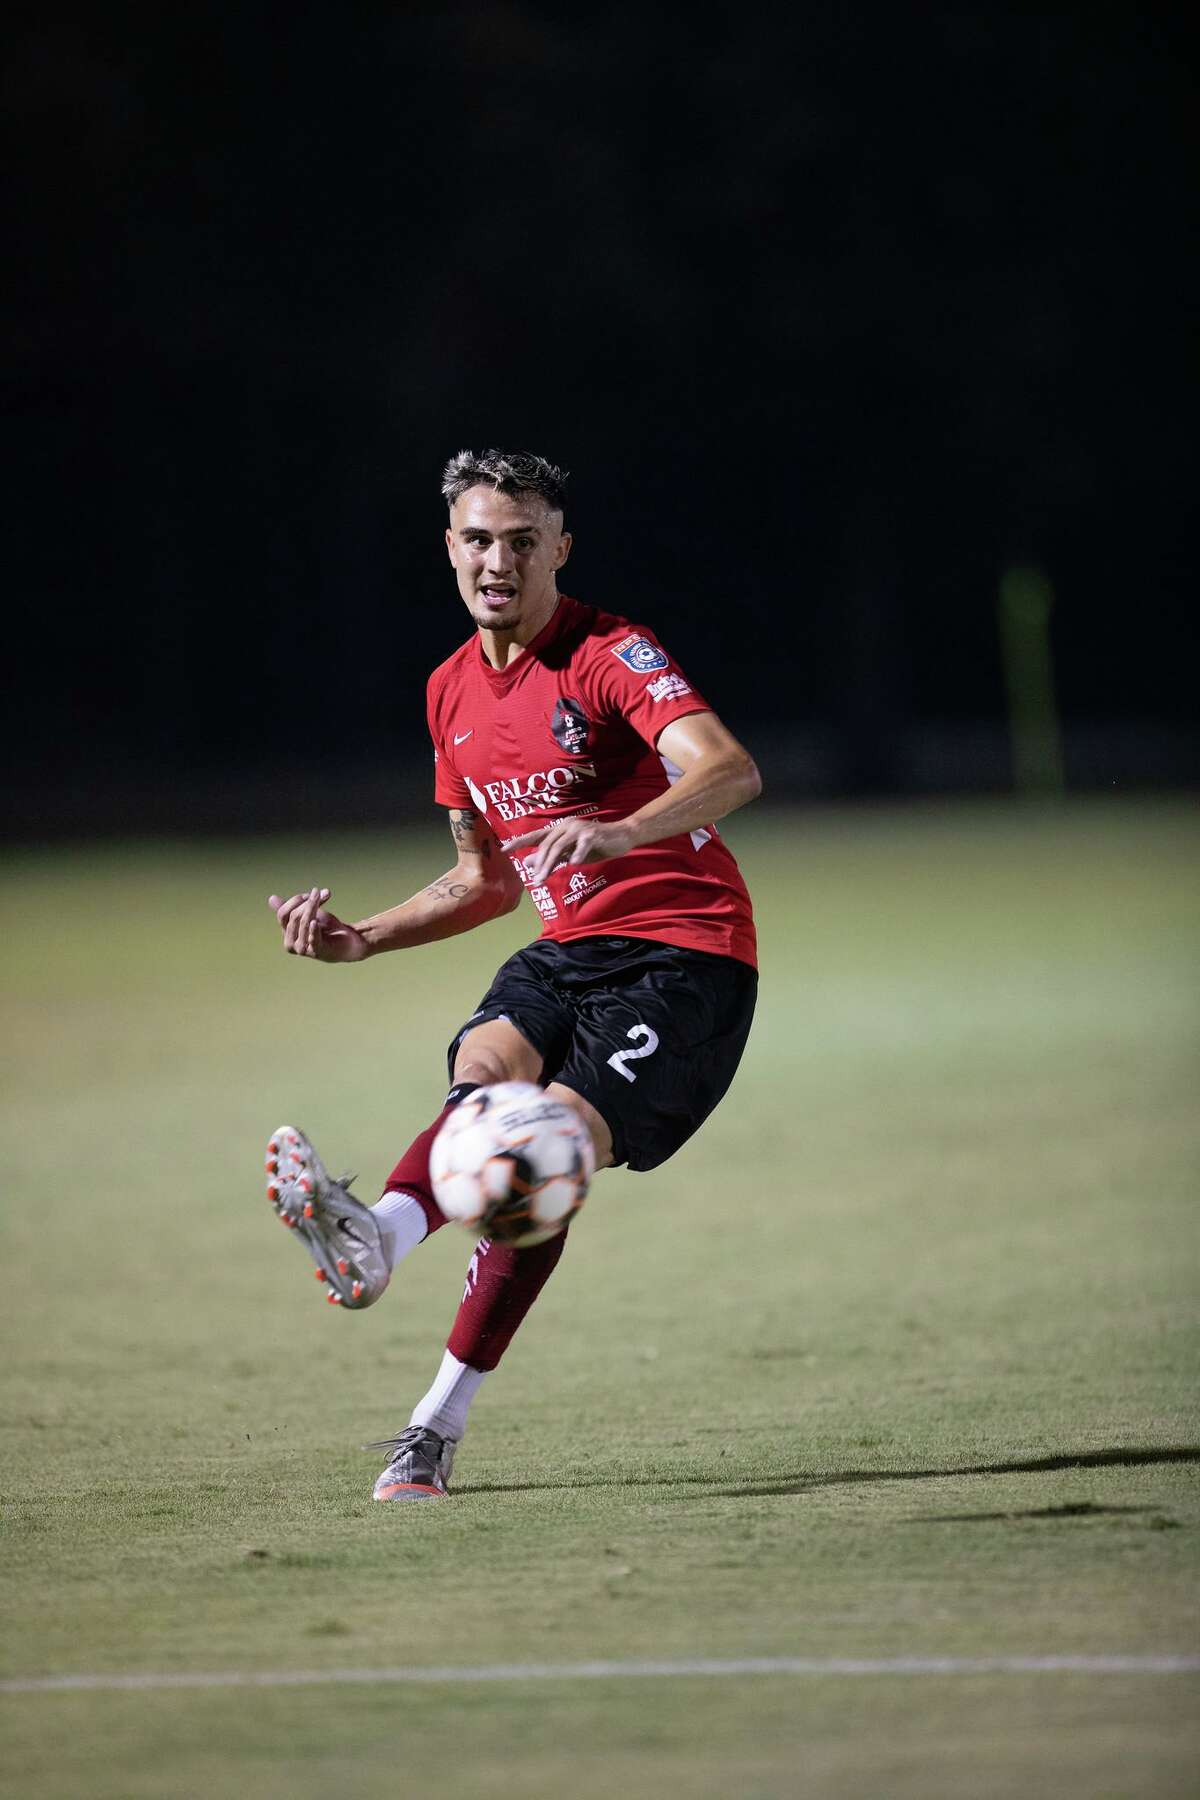 Gabriel Claudio scored one of four goals for the Heat in Wednesday's 4-0 win over FC Brownsville at the TAMIU Soccer Complex.